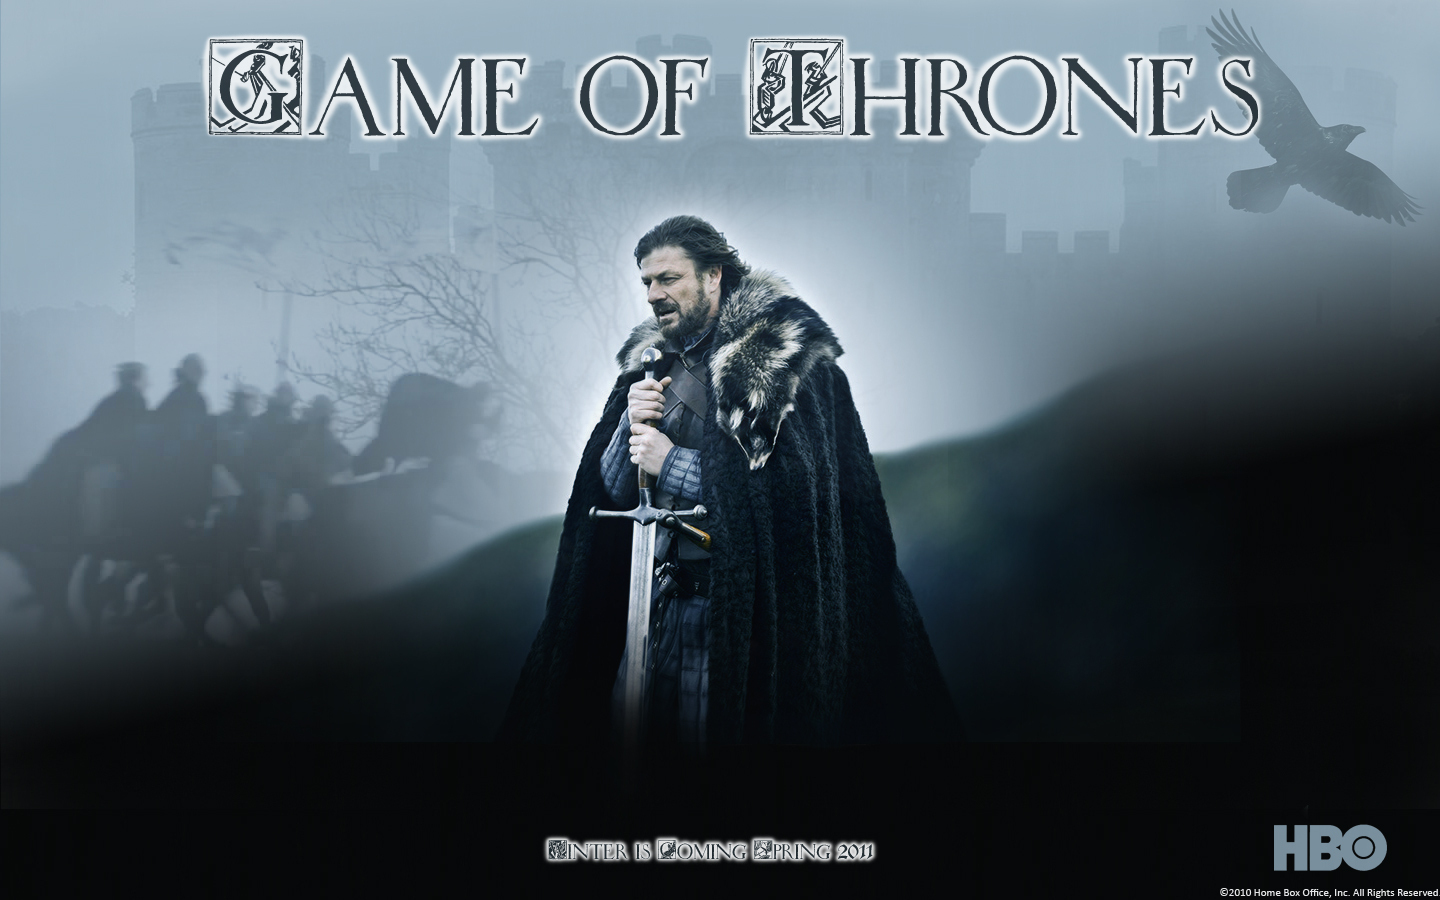 http://3.bp.blogspot.com/-WraneX9Nxqo/TfuJQce0mQI/AAAAAAAAAKc/VeLKJ9KwZvo/s1600/Game-of-Thrones-game-of-thrones-17631244-1440-900.jpg